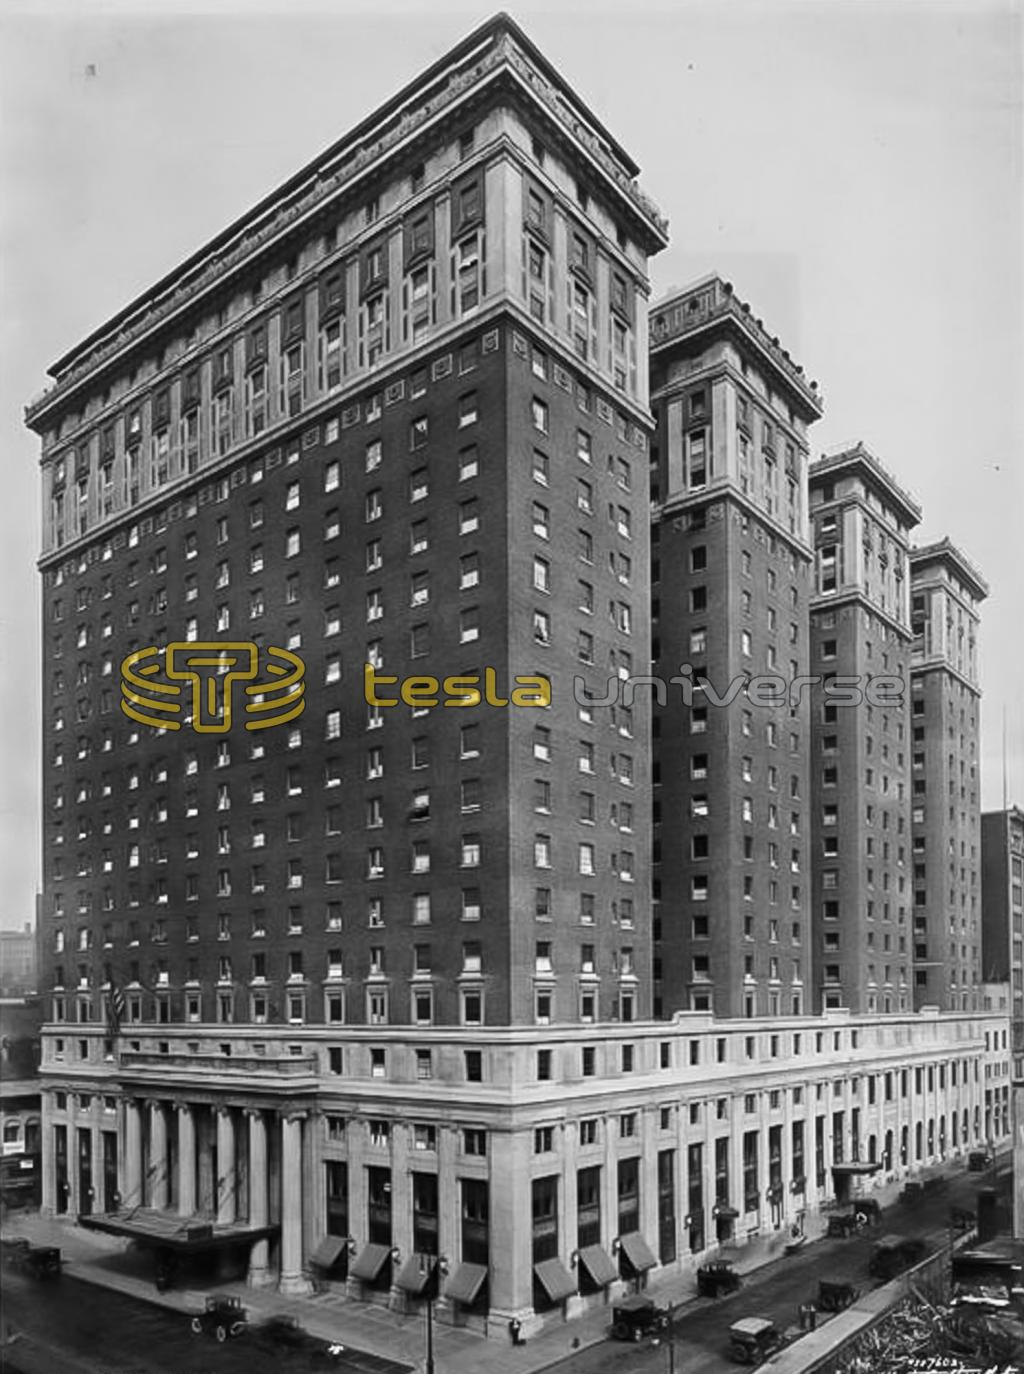 The Hotel Pennsylvania, New York City where Tesla lived briefly